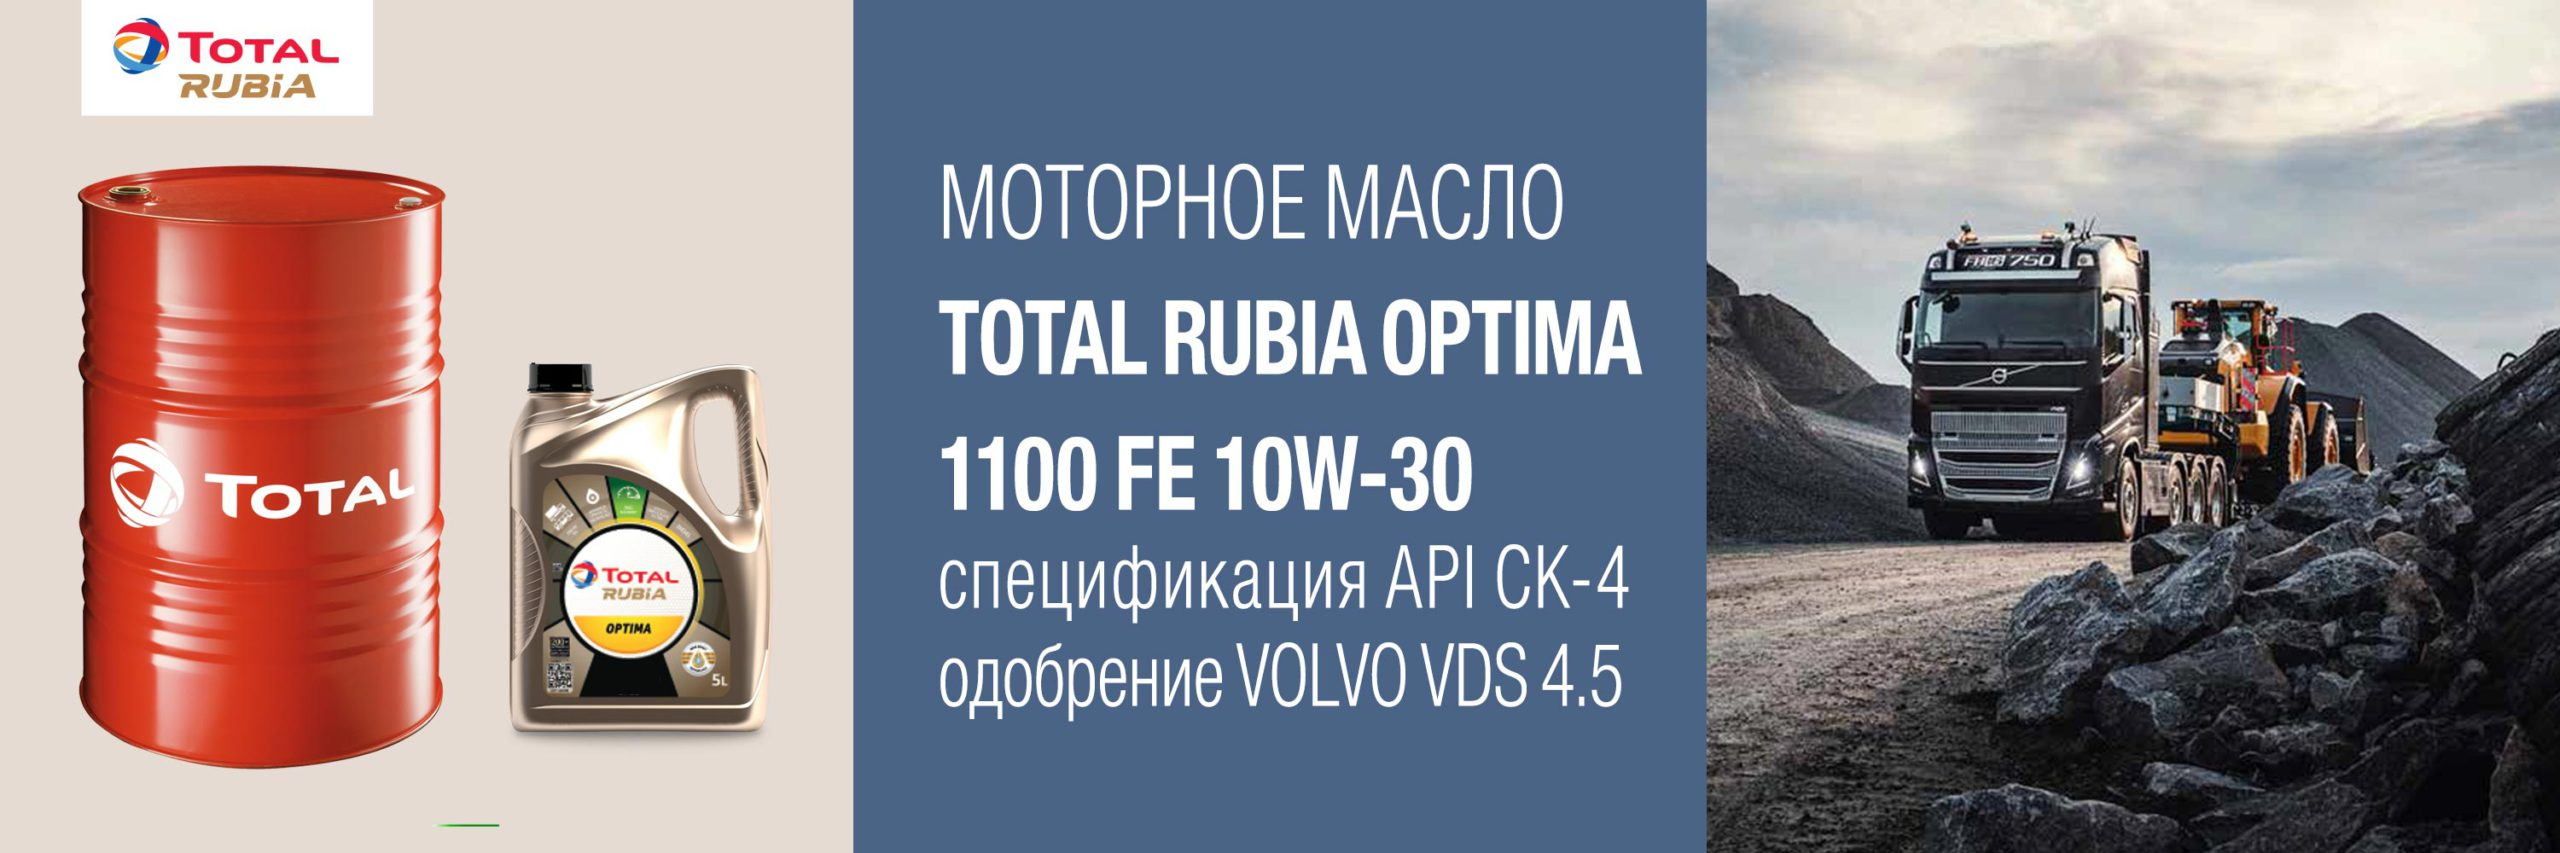 TOTAL RUBIA OPTIMA 1100 FE 10W-30 – моторное масло с одобрениями ОЕМ VOLVO VDS 4.5